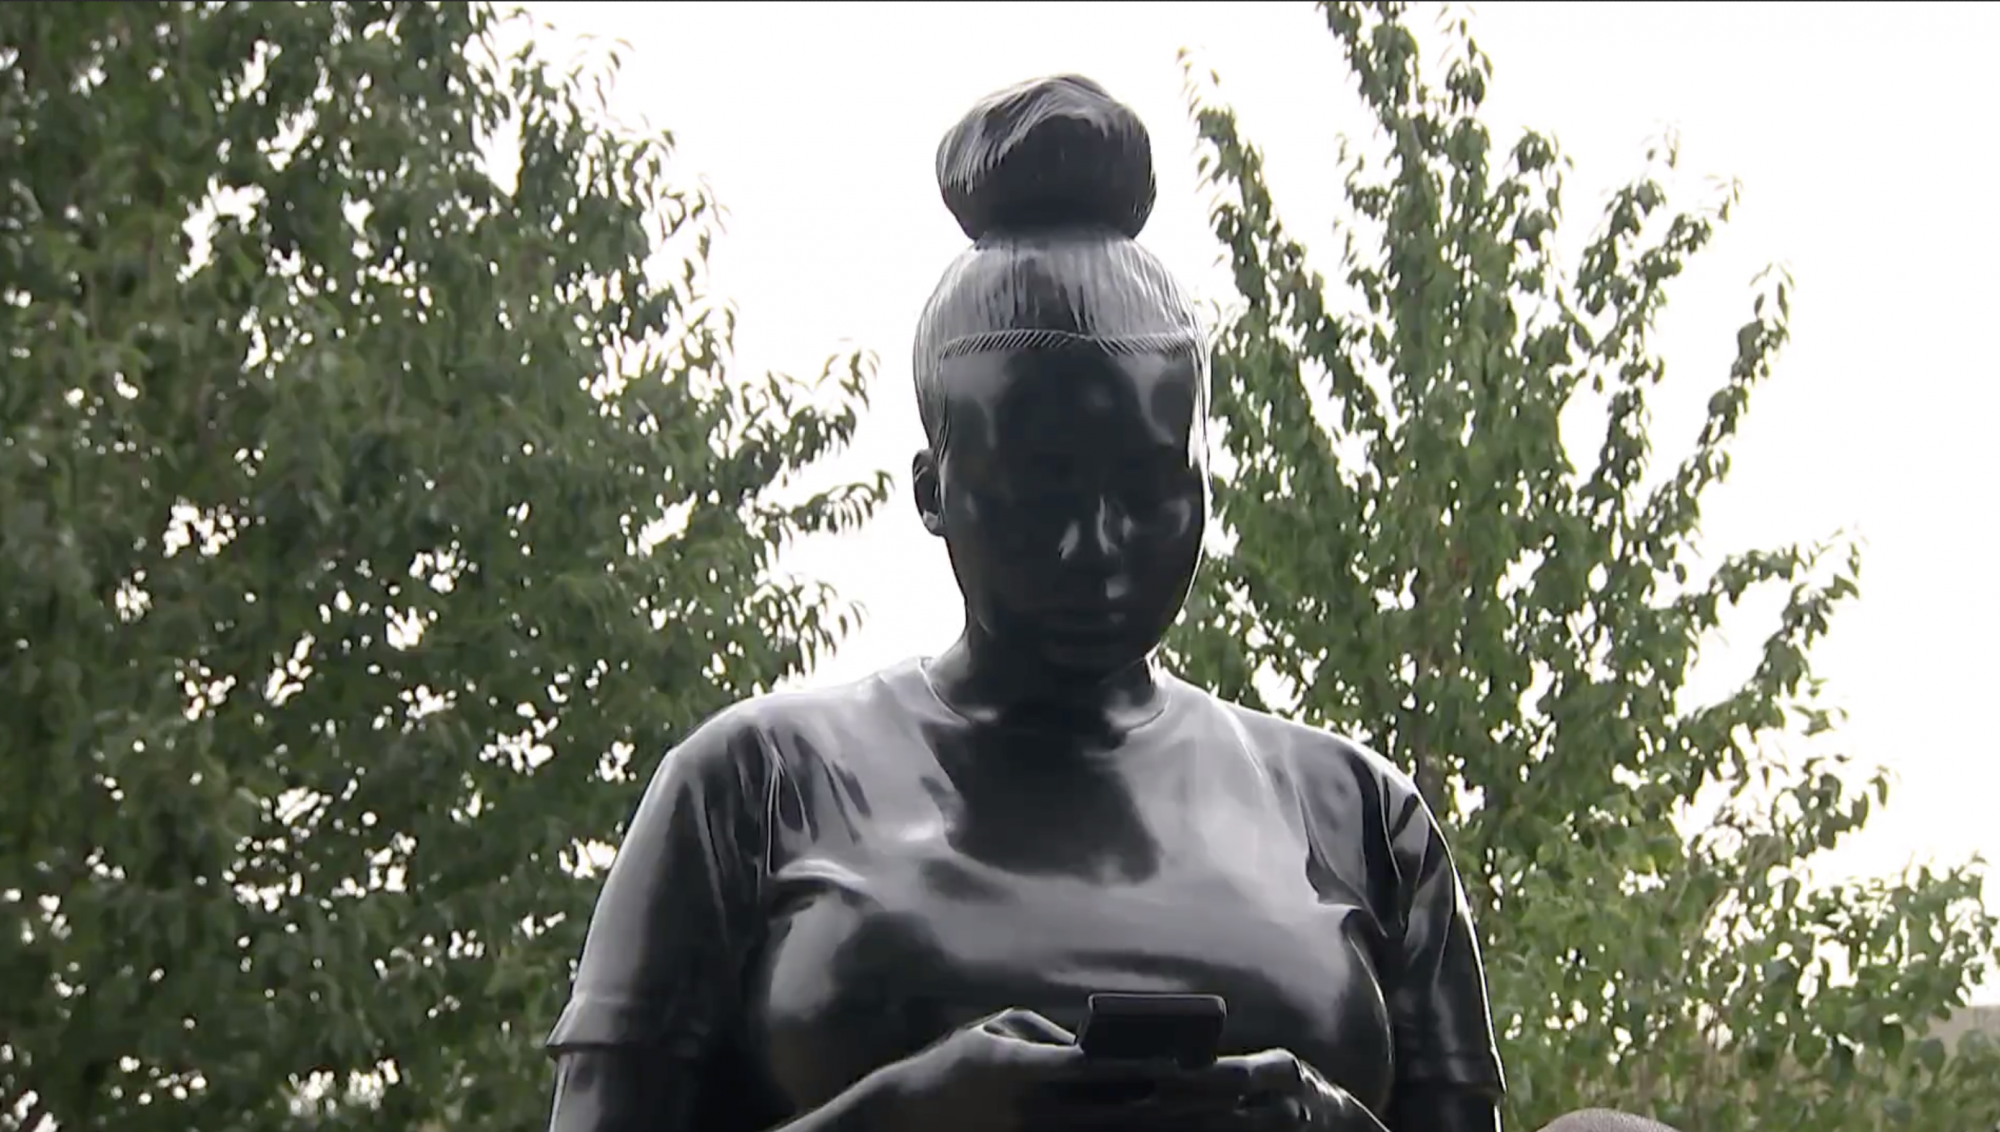 New sculpture of black woman one of only three in country - channel 4